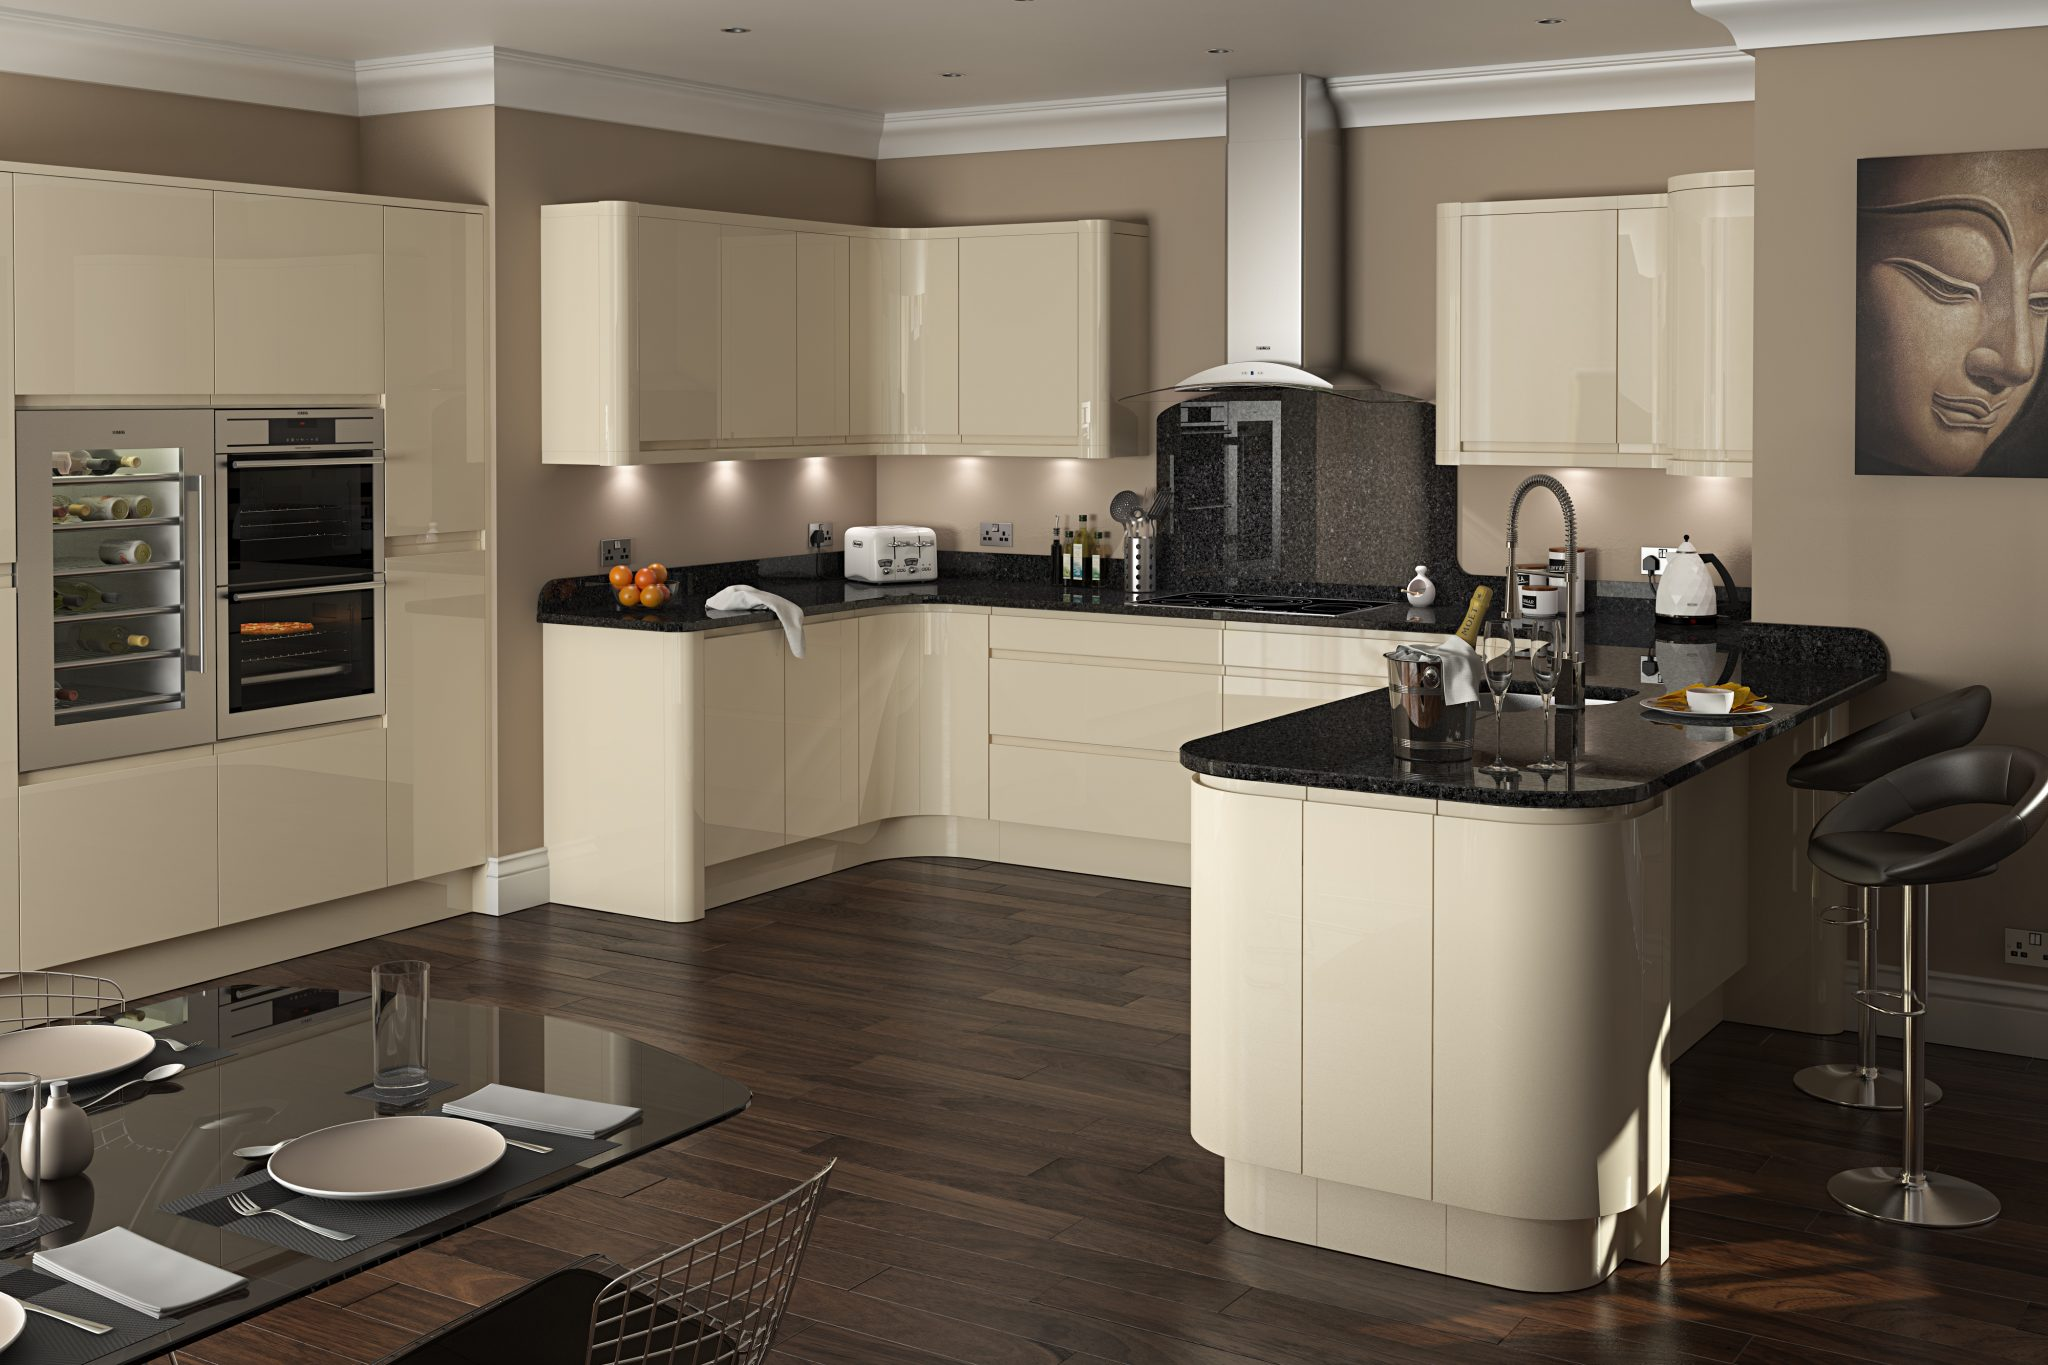 Kitchen design kitchens wirral bespoke luxury designs for Kichan dizain